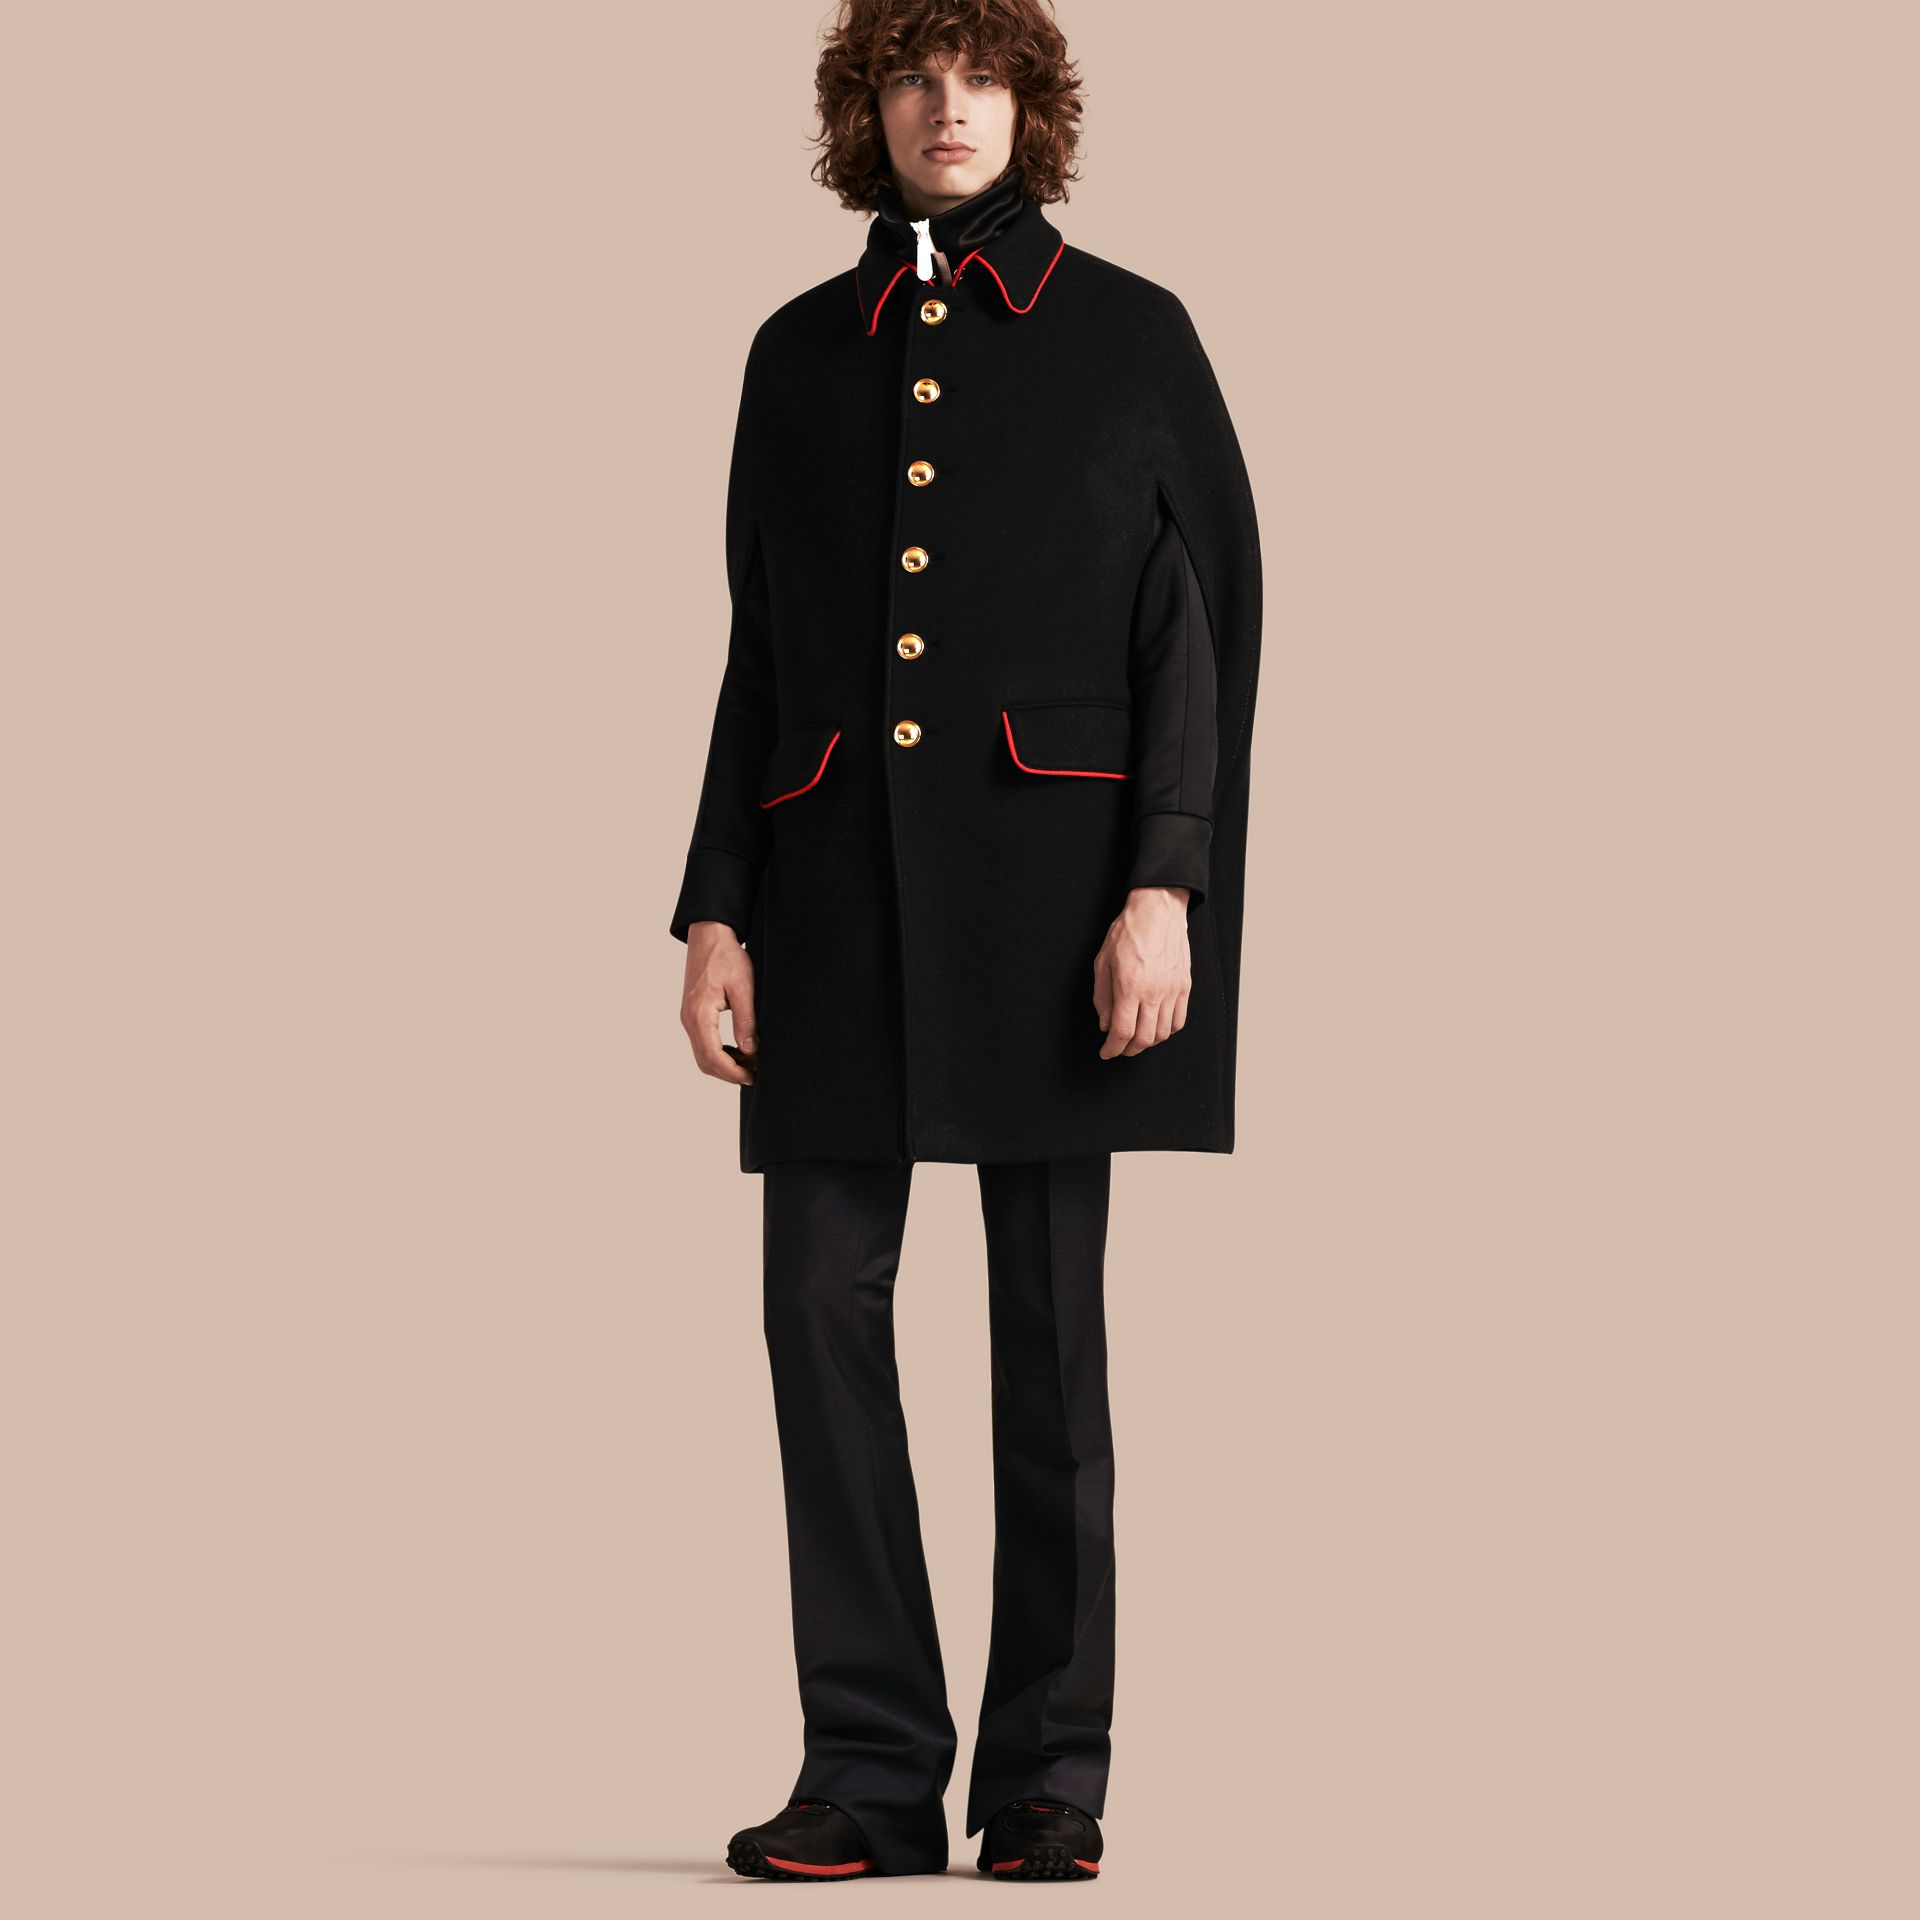 Black Wool Cashmere Blend Military Cape Coat - gallery image 1